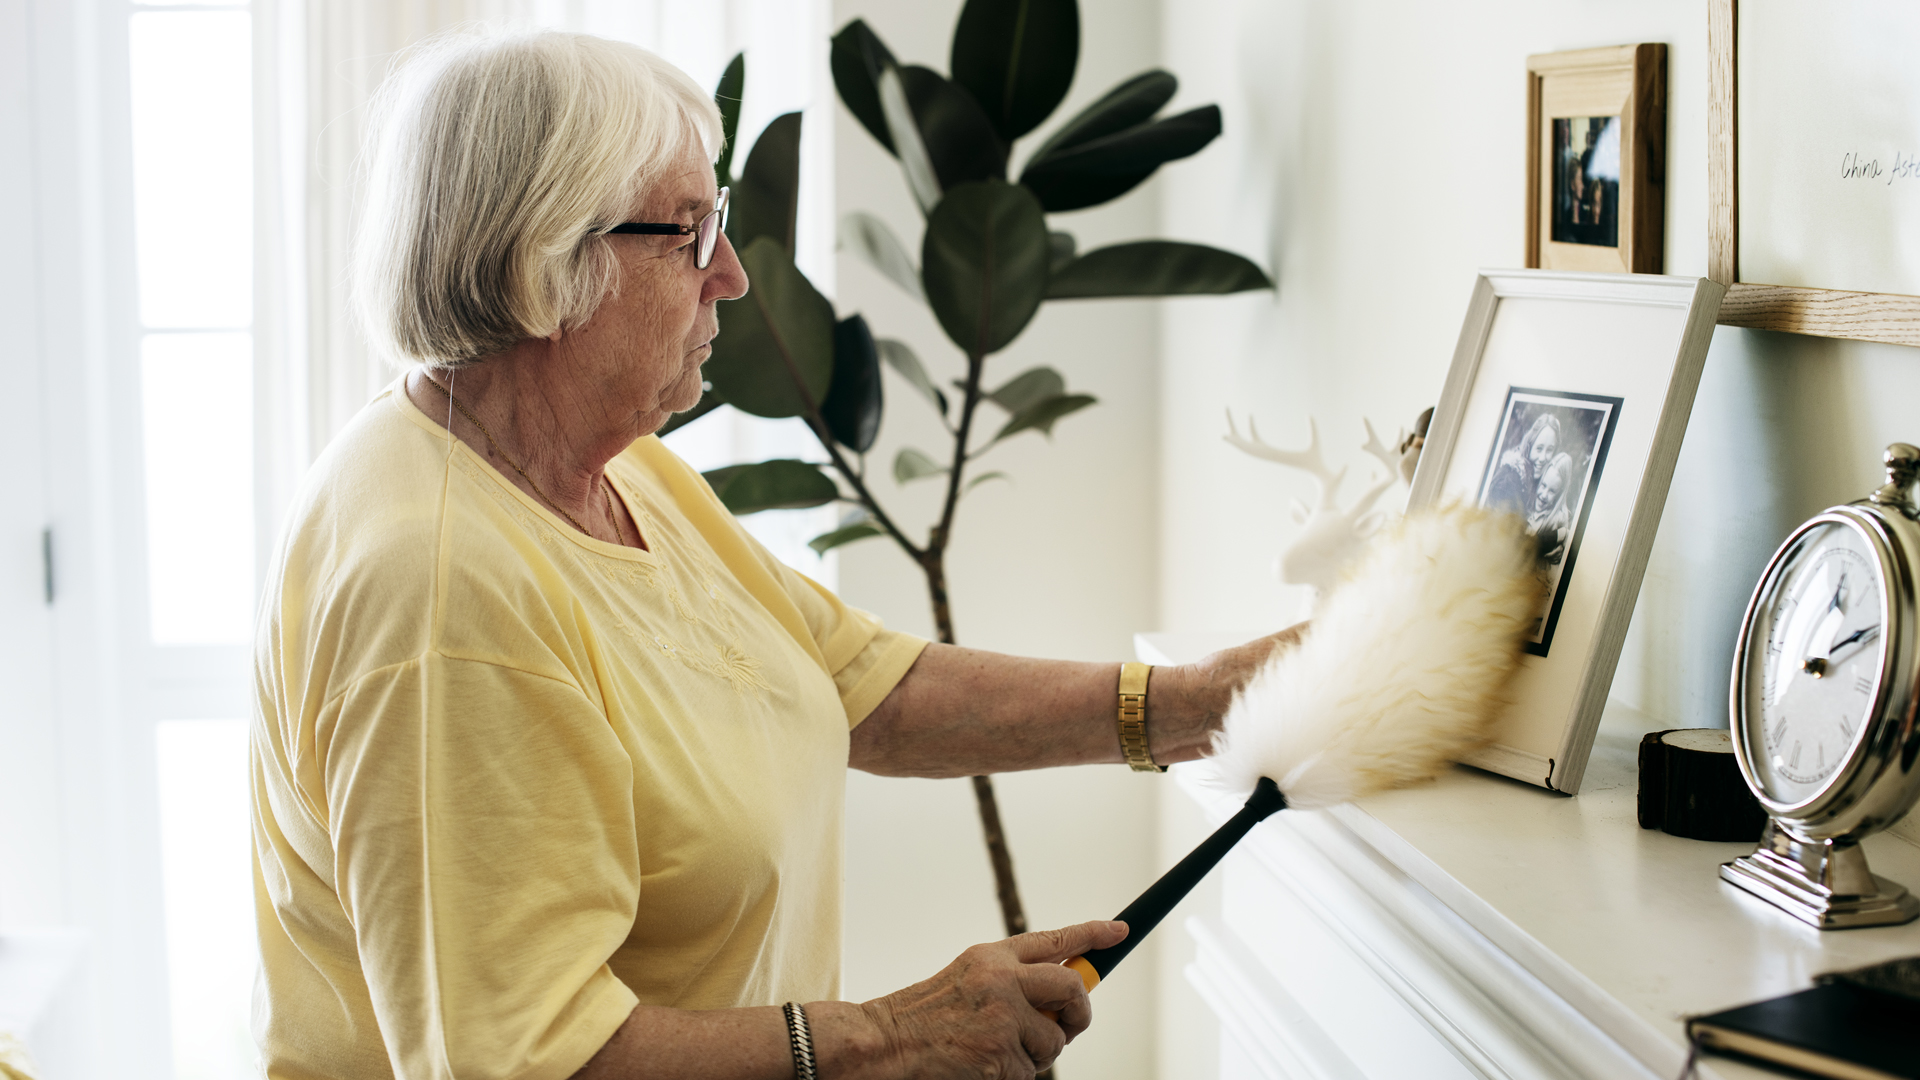 news crop senior-woman-dusting-a-family-photo-PHX7DFU.jpg